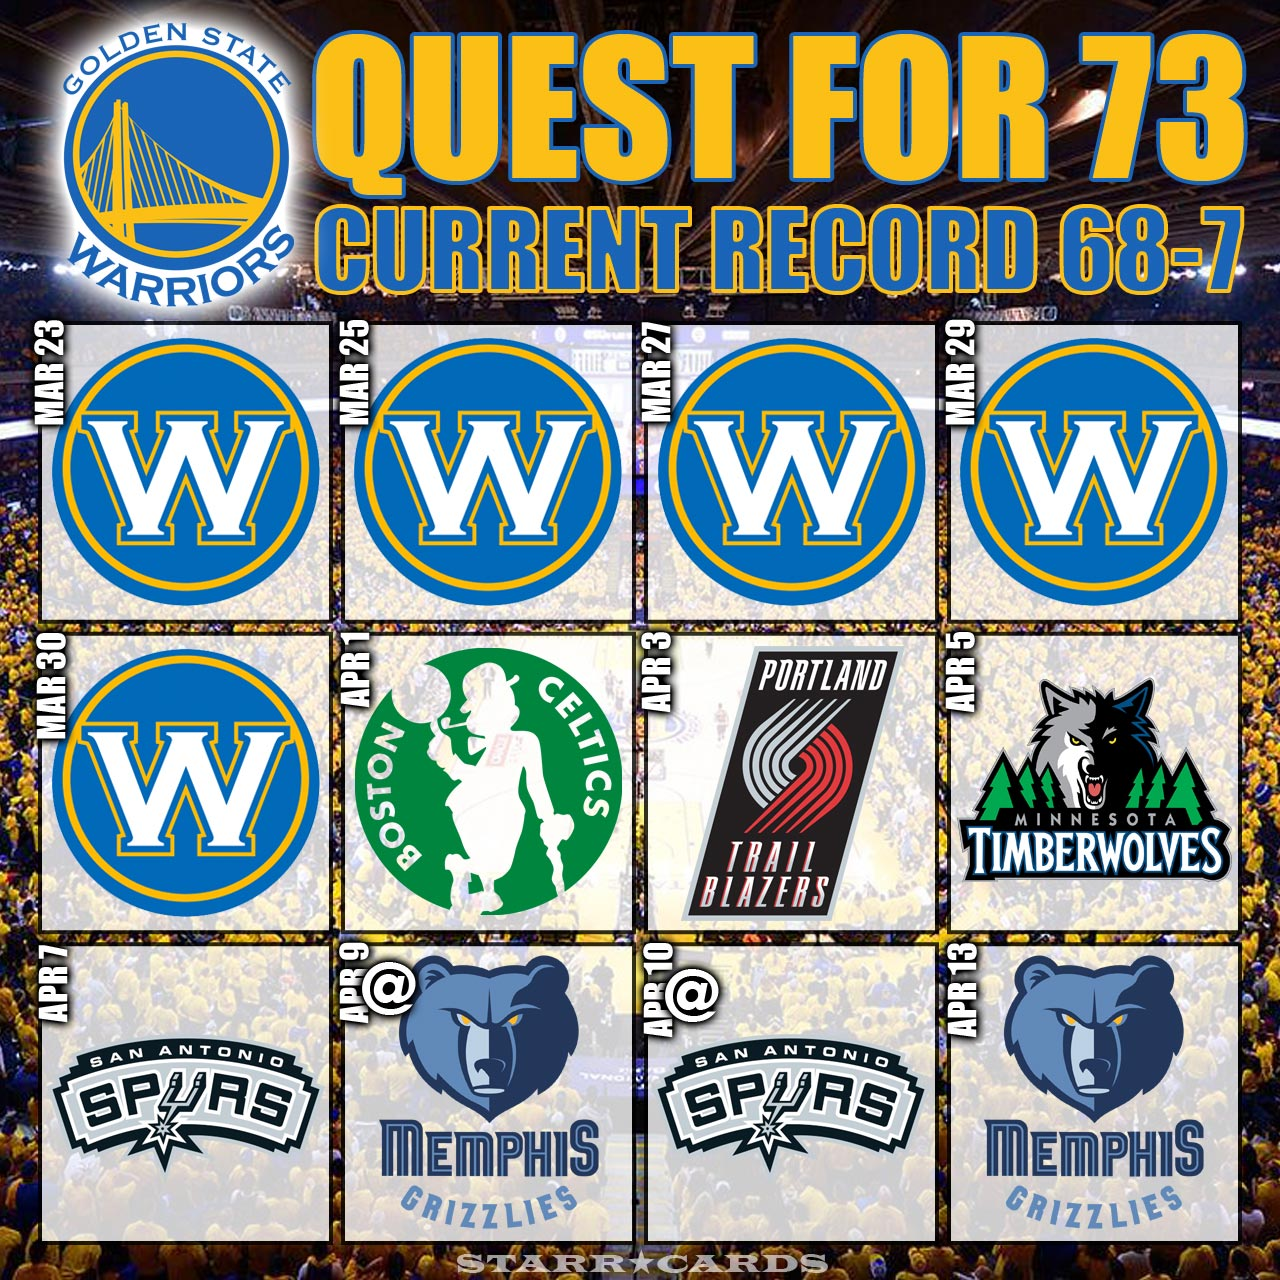 Quest for 73: Warriors move to 68-7 after OT win vs Utah Jazz